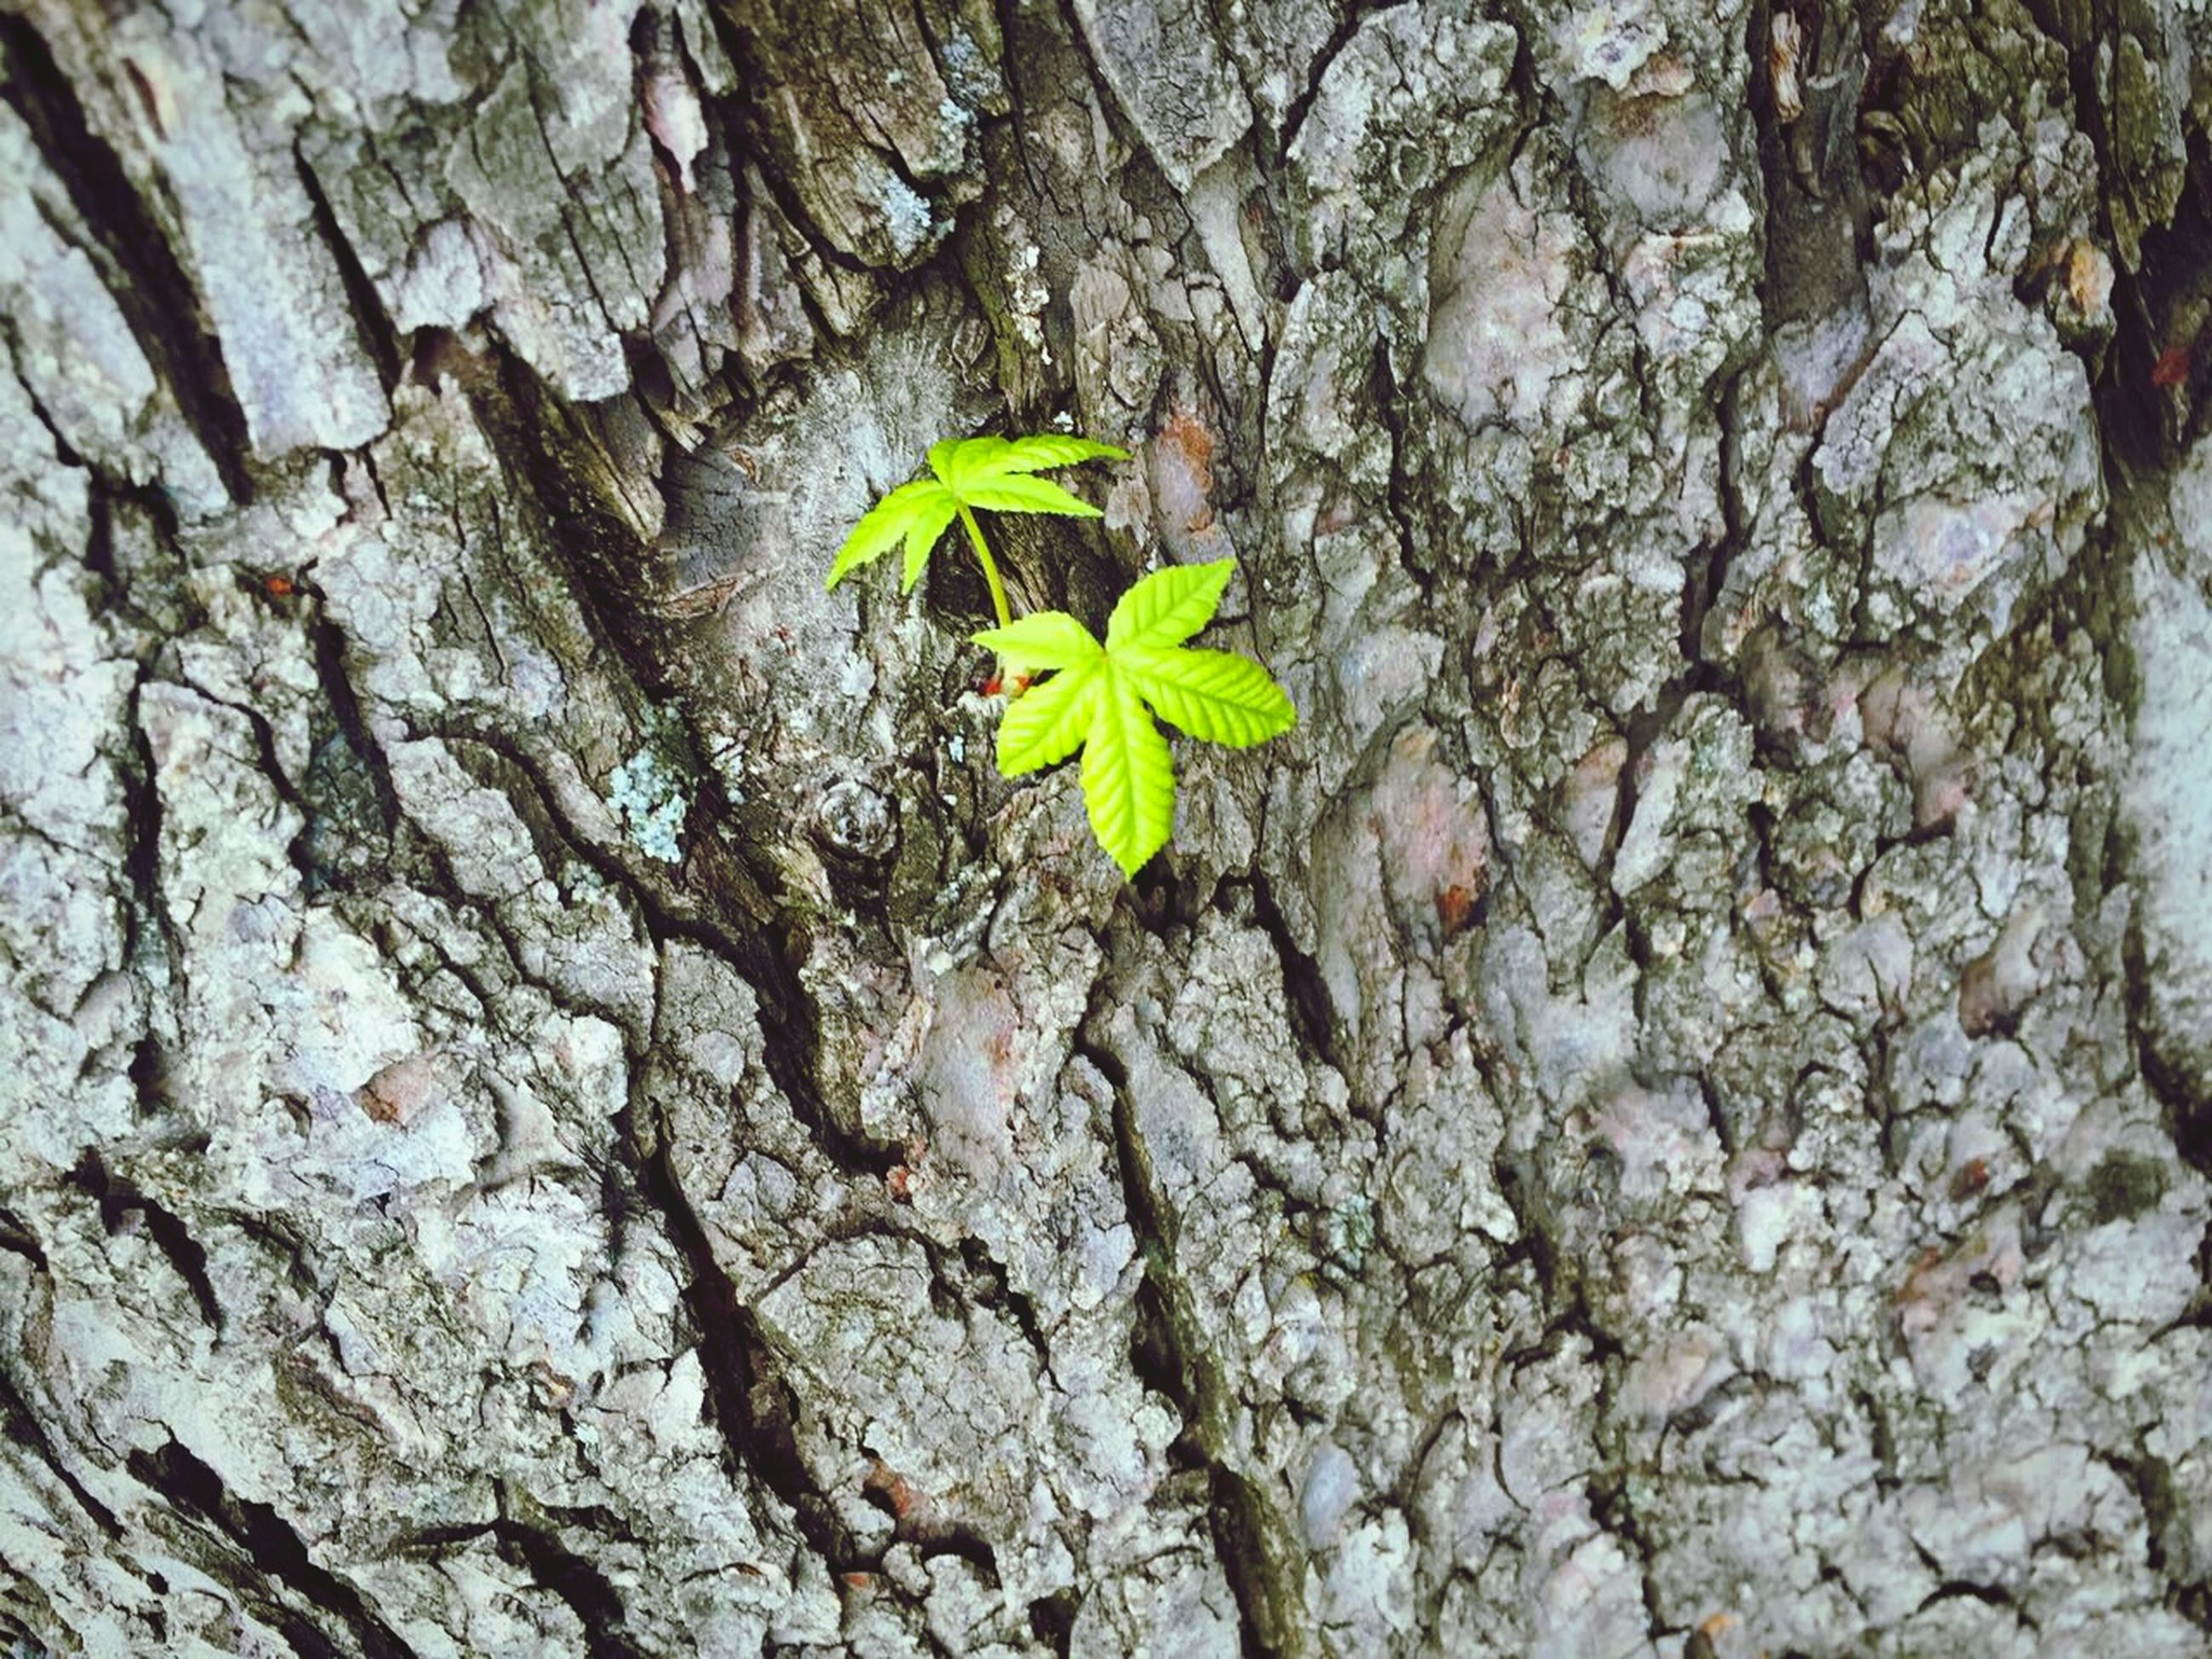 nature, growth, leaf, green color, plant, no people, tree, fragility, outdoors, textured, day, beauty in nature, close-up, branch, freshness